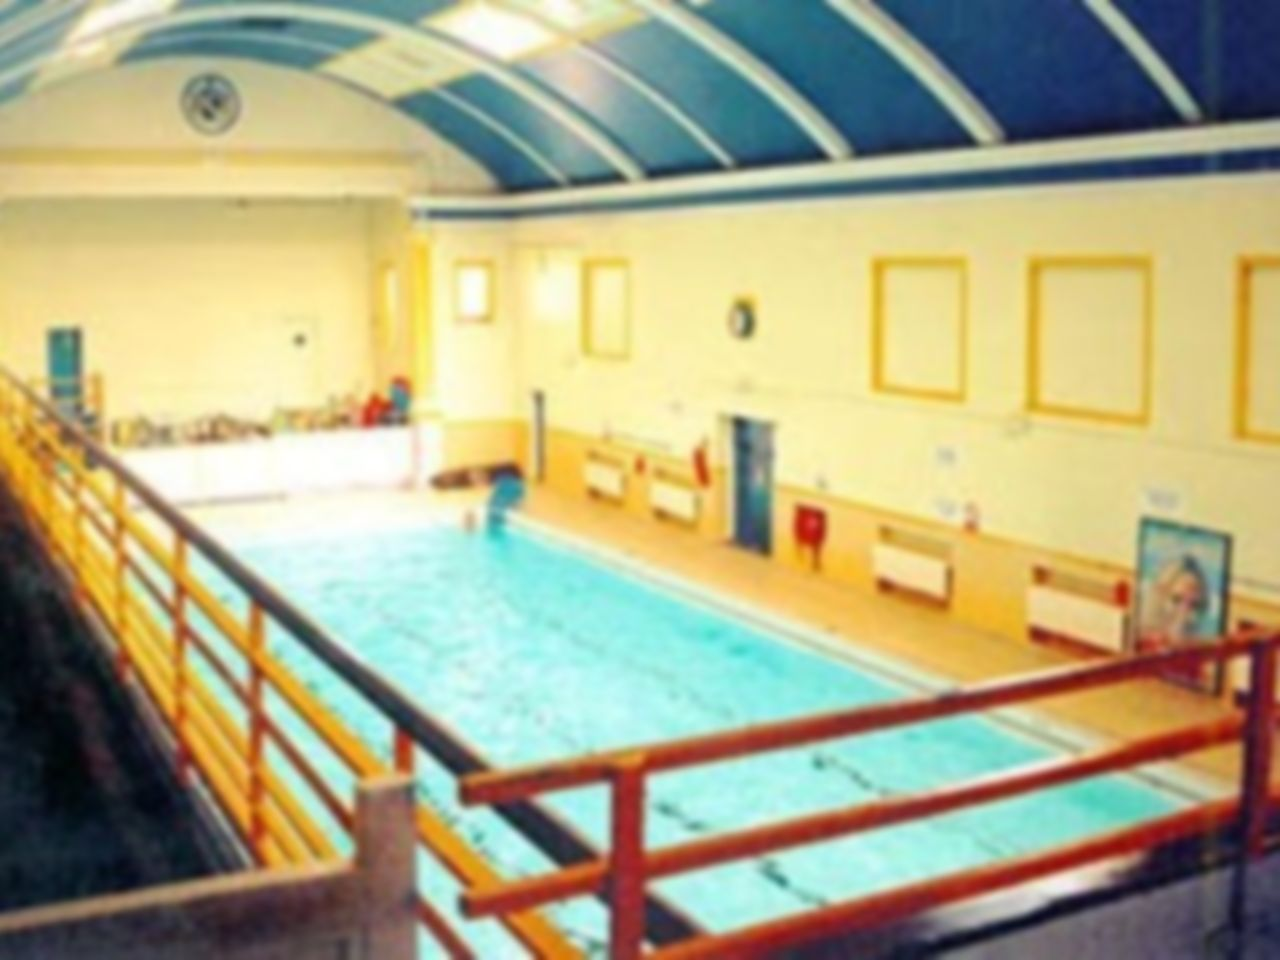 Bingley Pool Flexible Gym Passes Bd16 Bradford